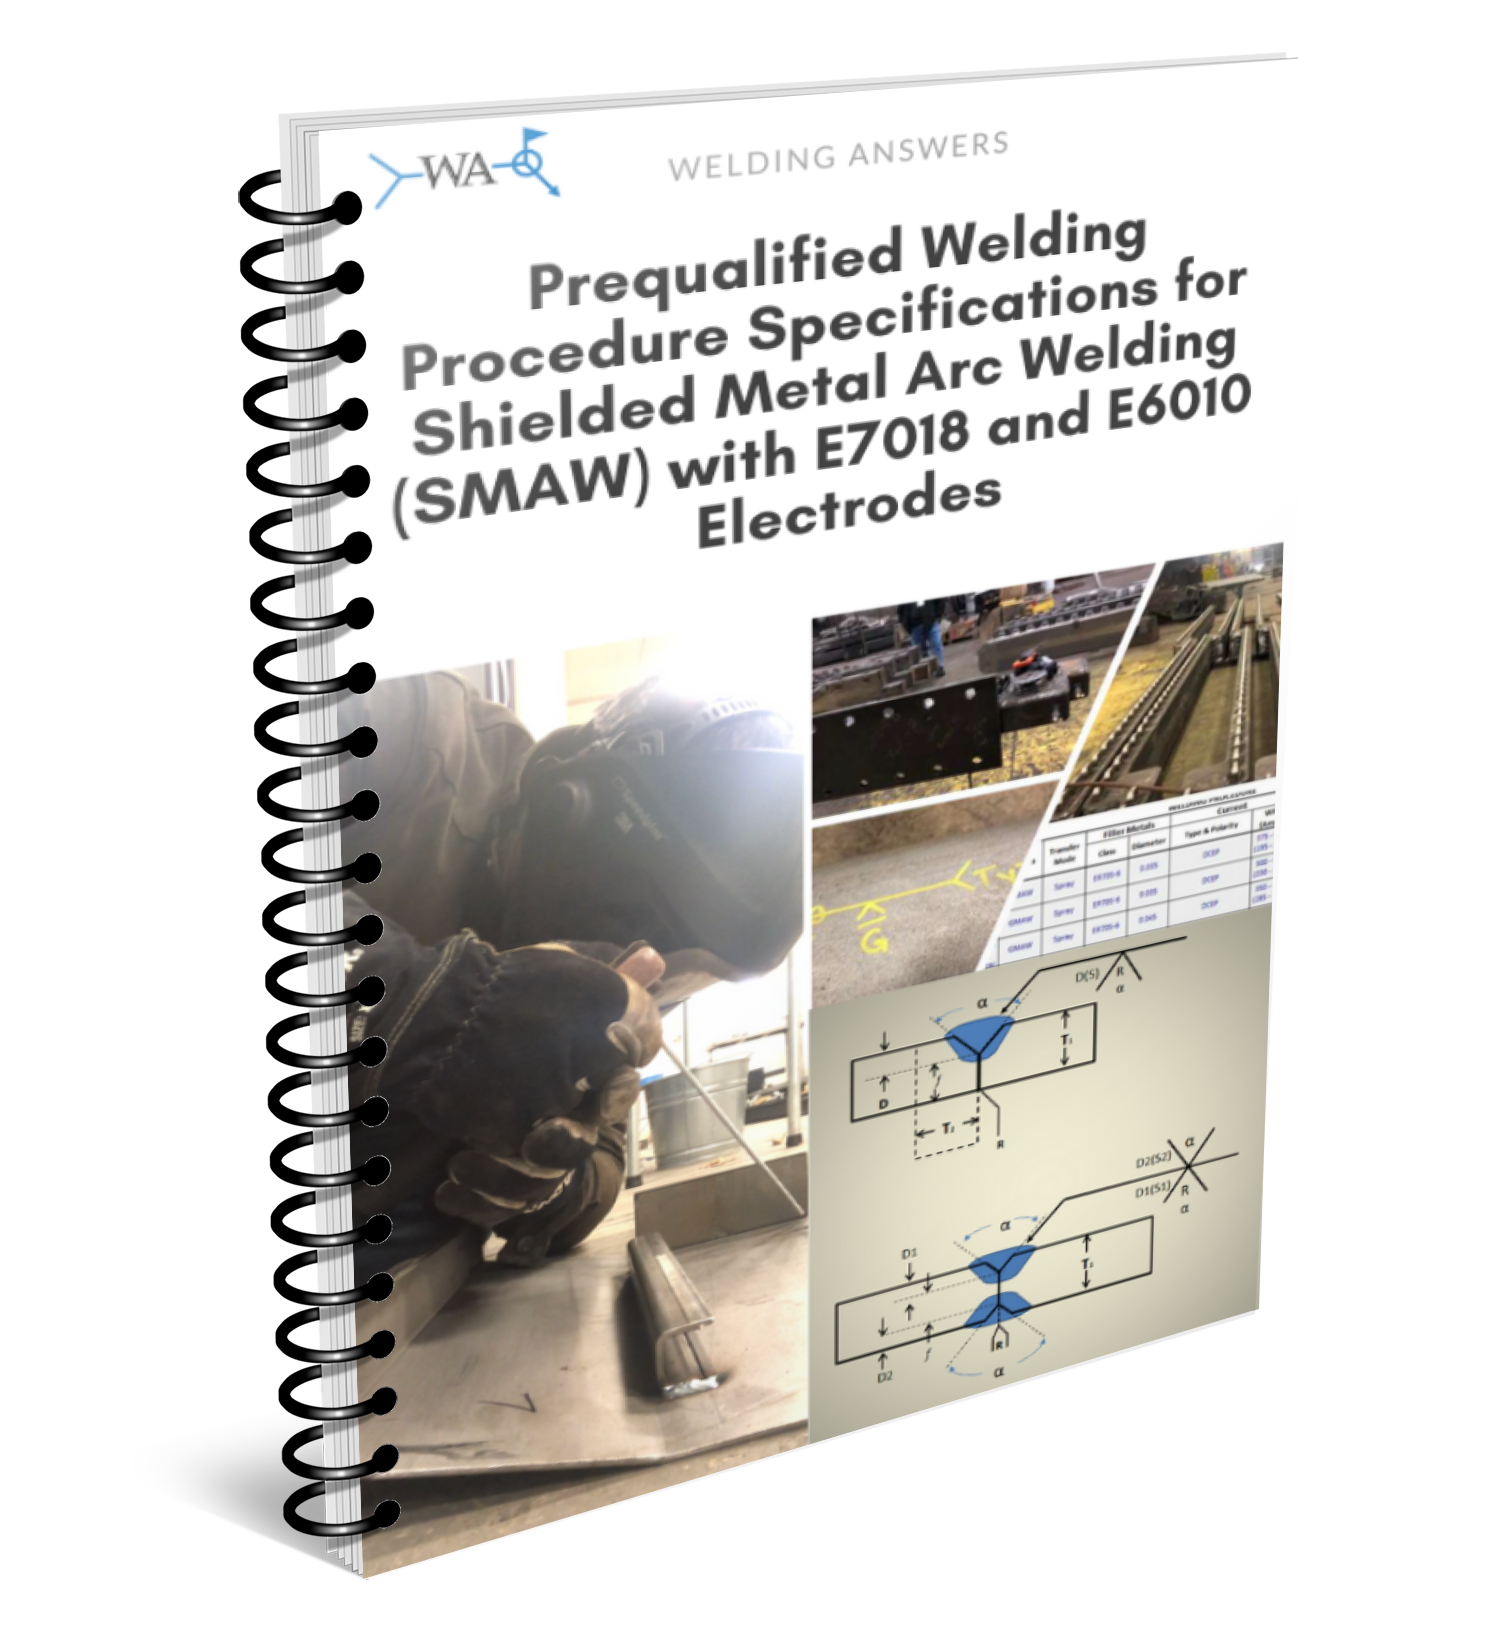 Are you looking for welding procedures for E6010 and/or E7018 stick processes? Click the image above to get 48 Prequalified WPSs for SMAW in conformance with AWS D1.1 Structural Welding Code.